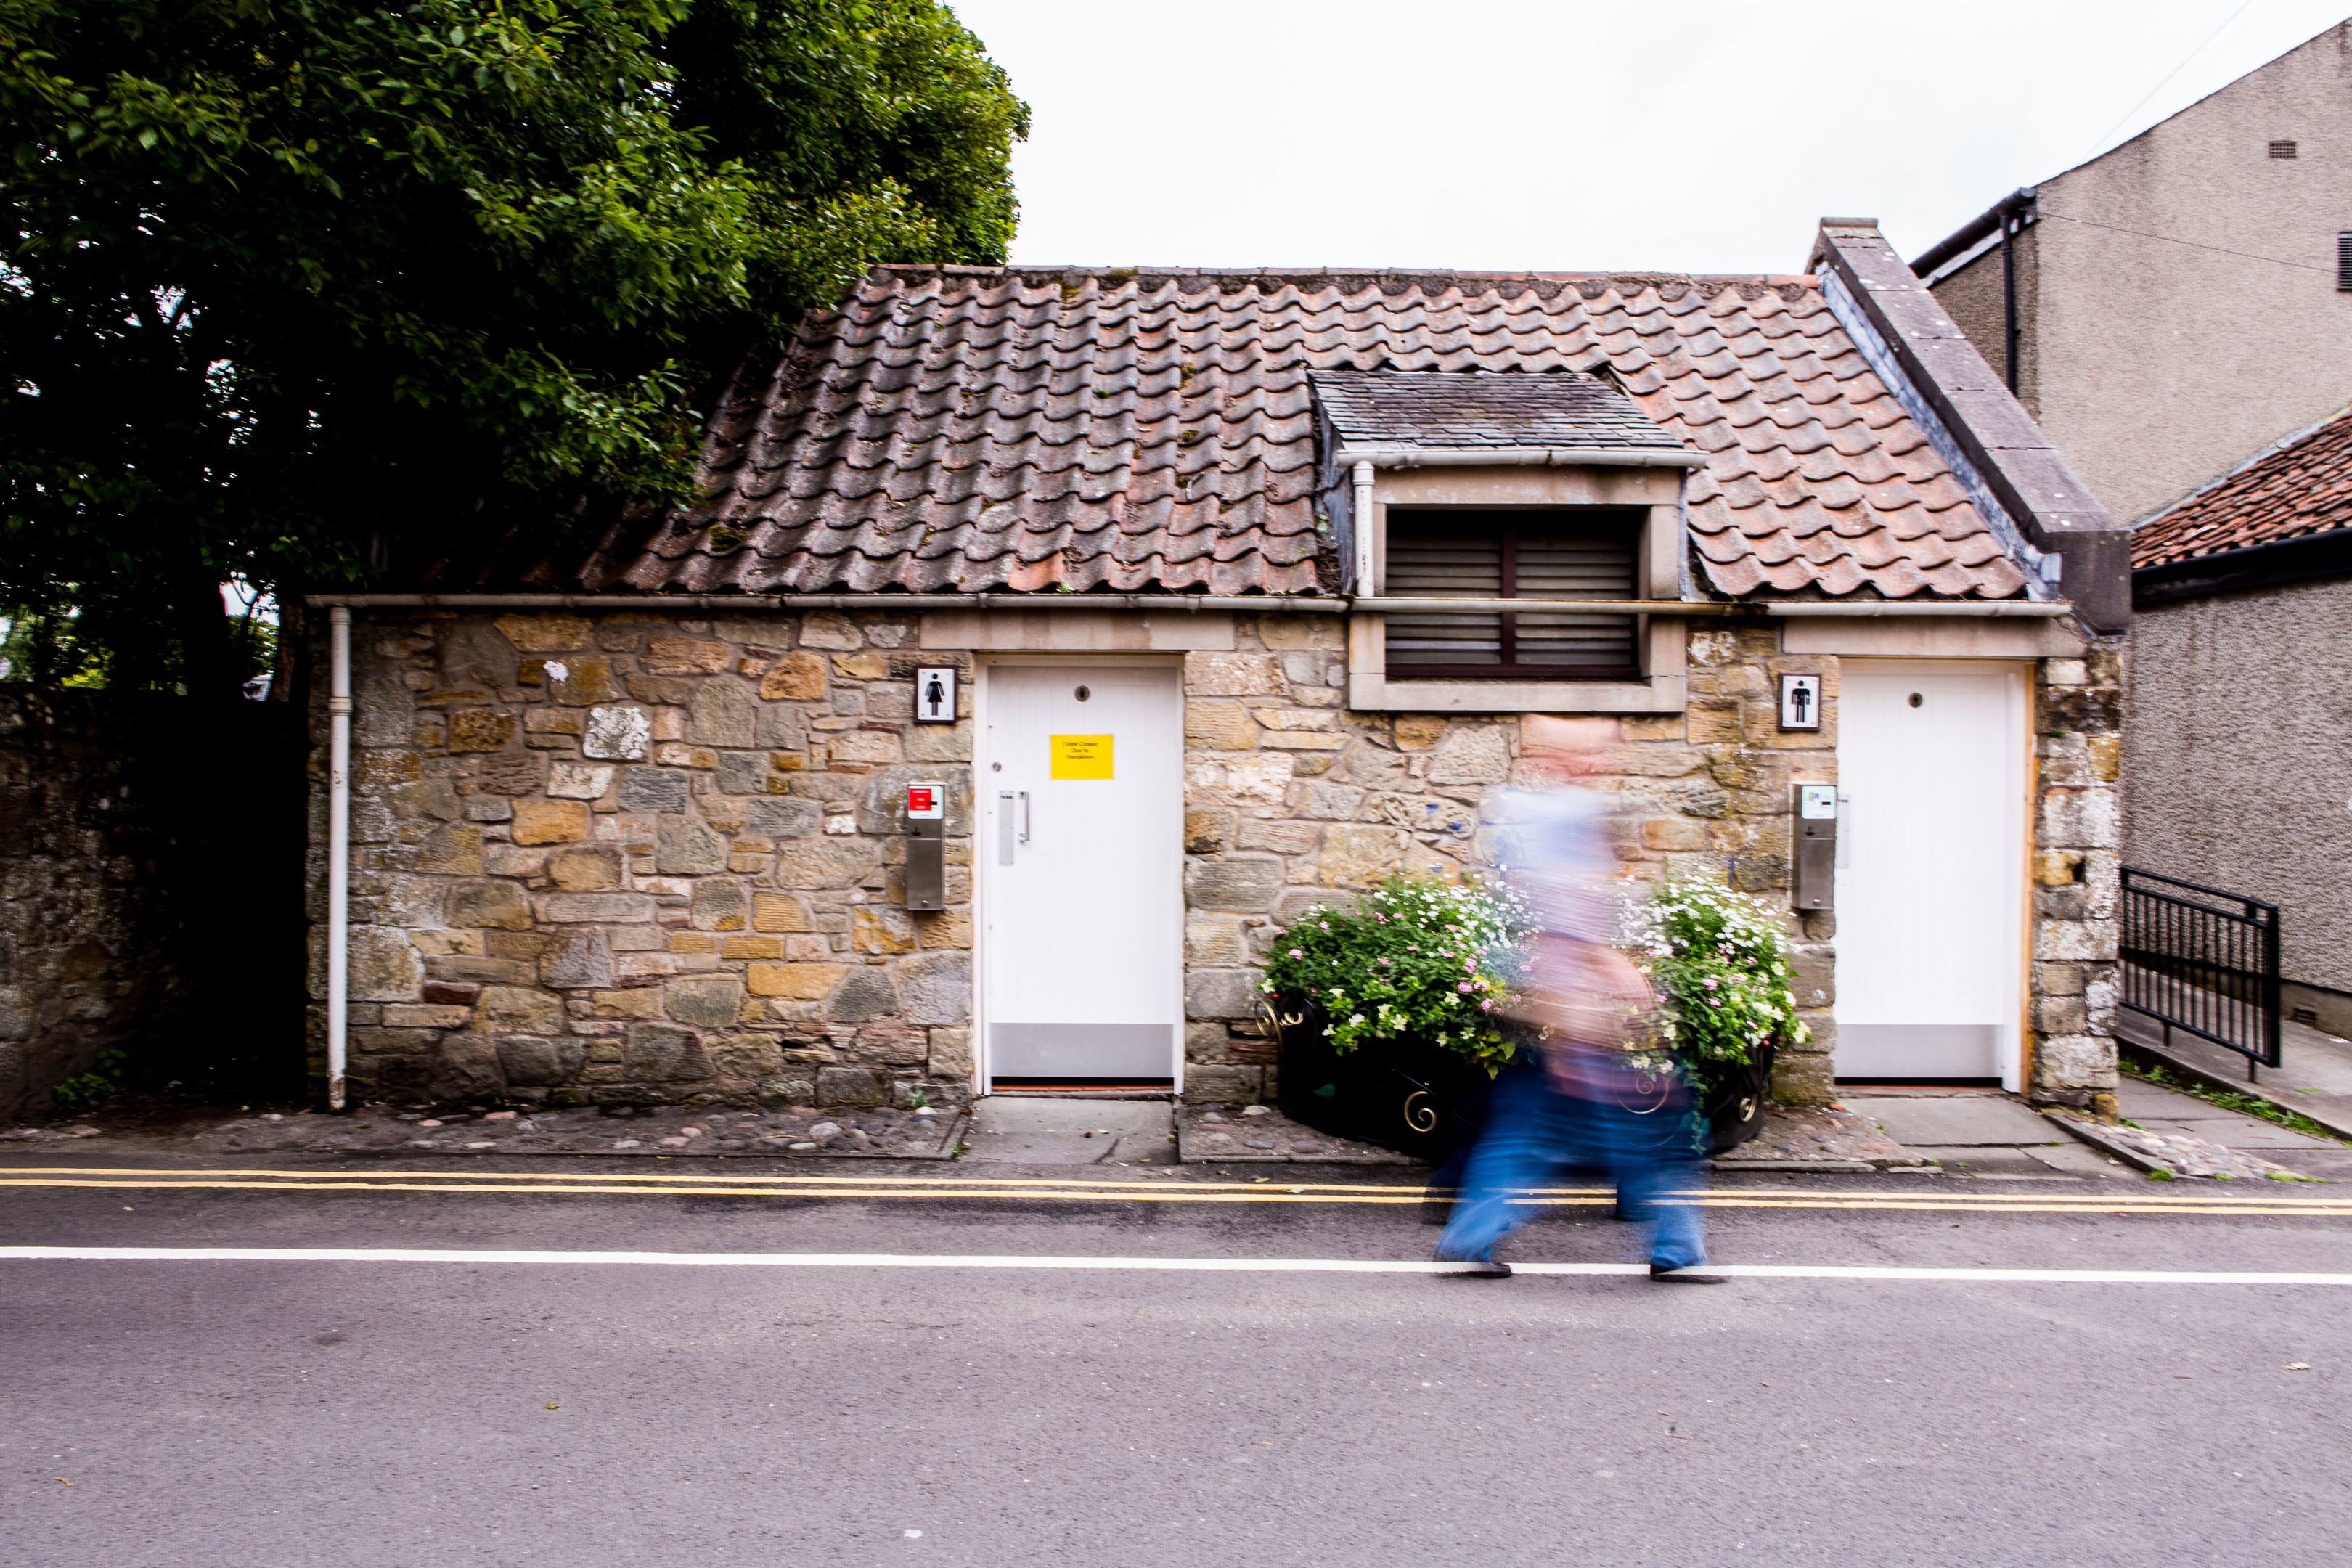 The public toilets in Falkland were closed due to vandalism.